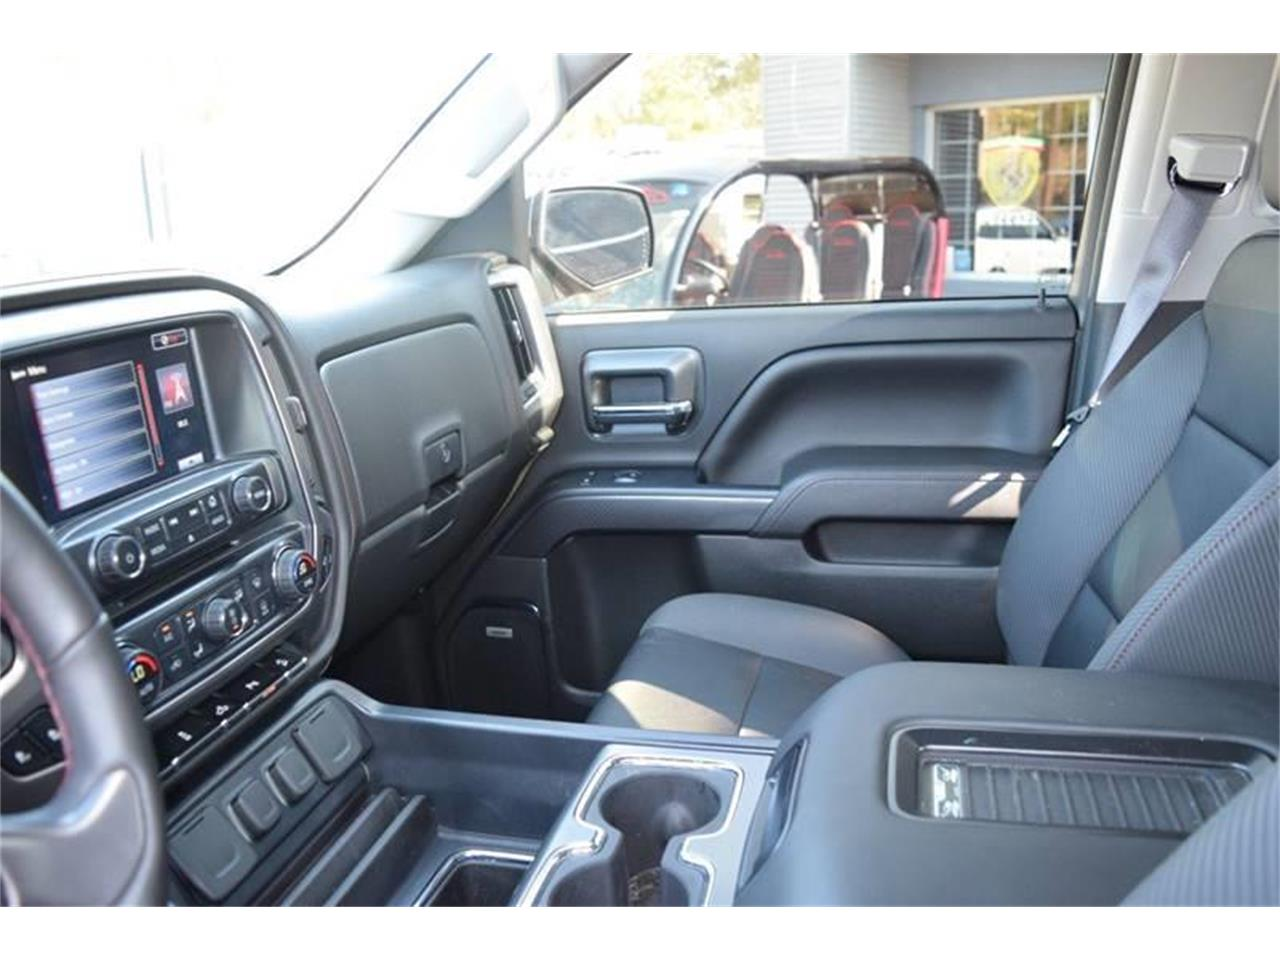 Large Picture of '16 GMC Sierra located in Biloxi Mississippi - $45,900.00 - LHZQ